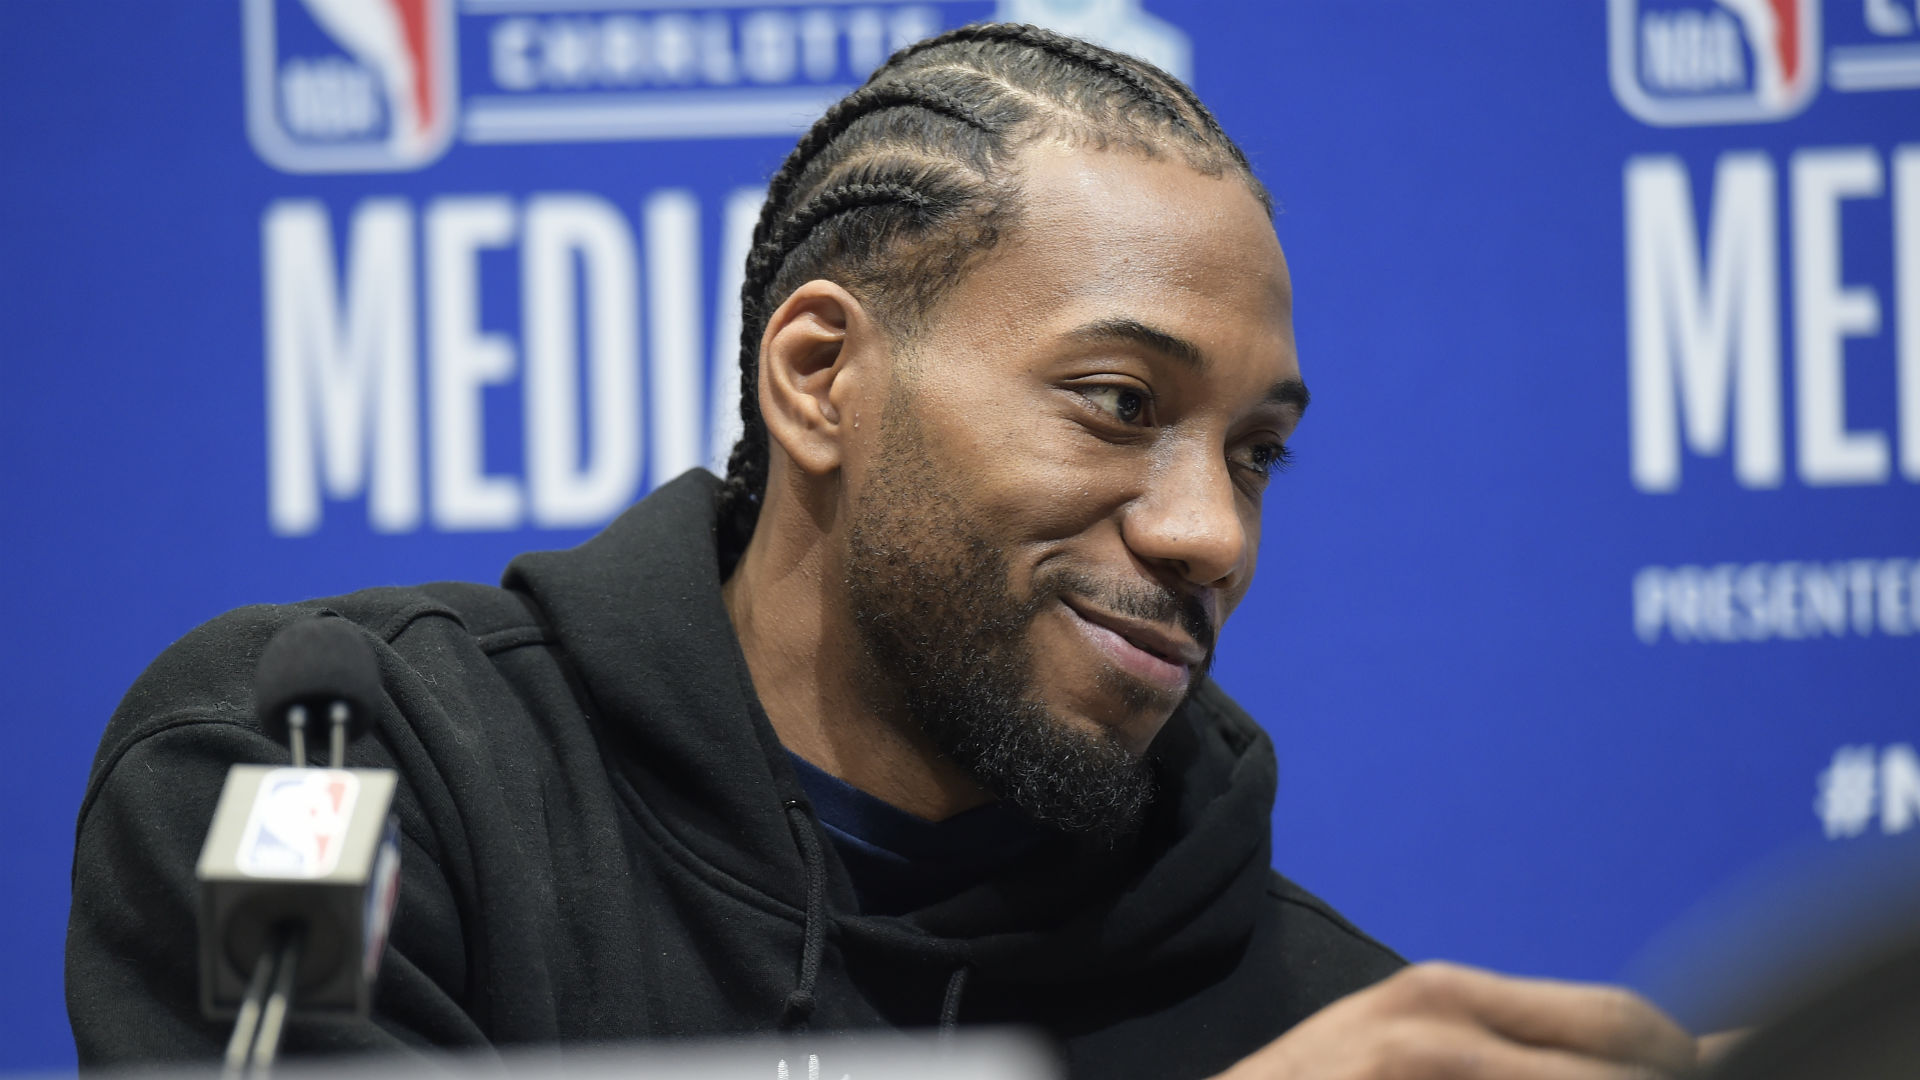 Kawhi Leonard on Raptors: 'I think we have a good chance of getting to the Finals'